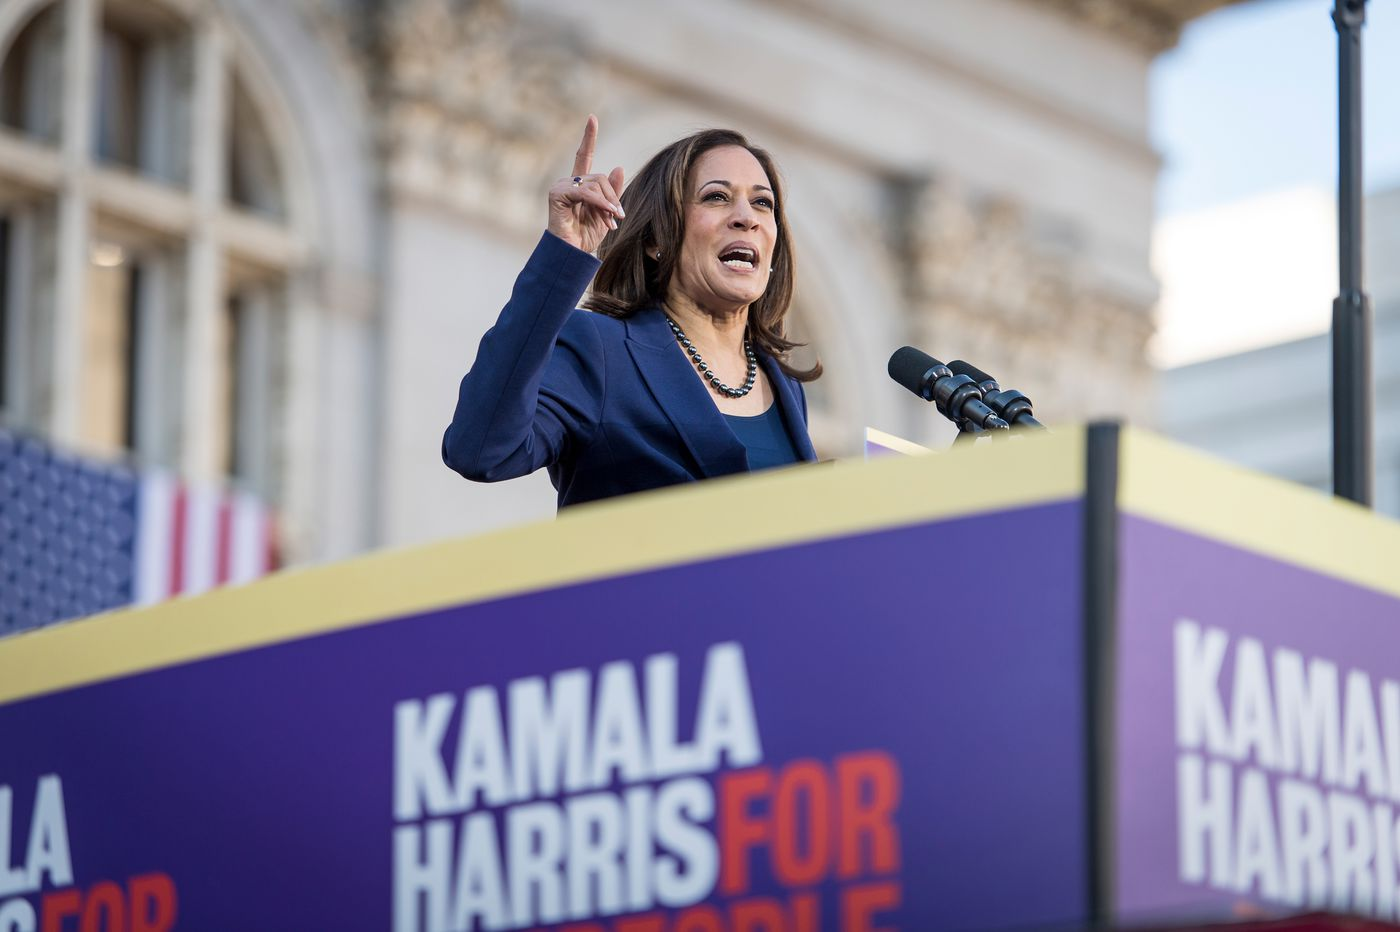 U.S. presidential candidate Kamala Harris wants marijuana legalised, cites Jamaican roots